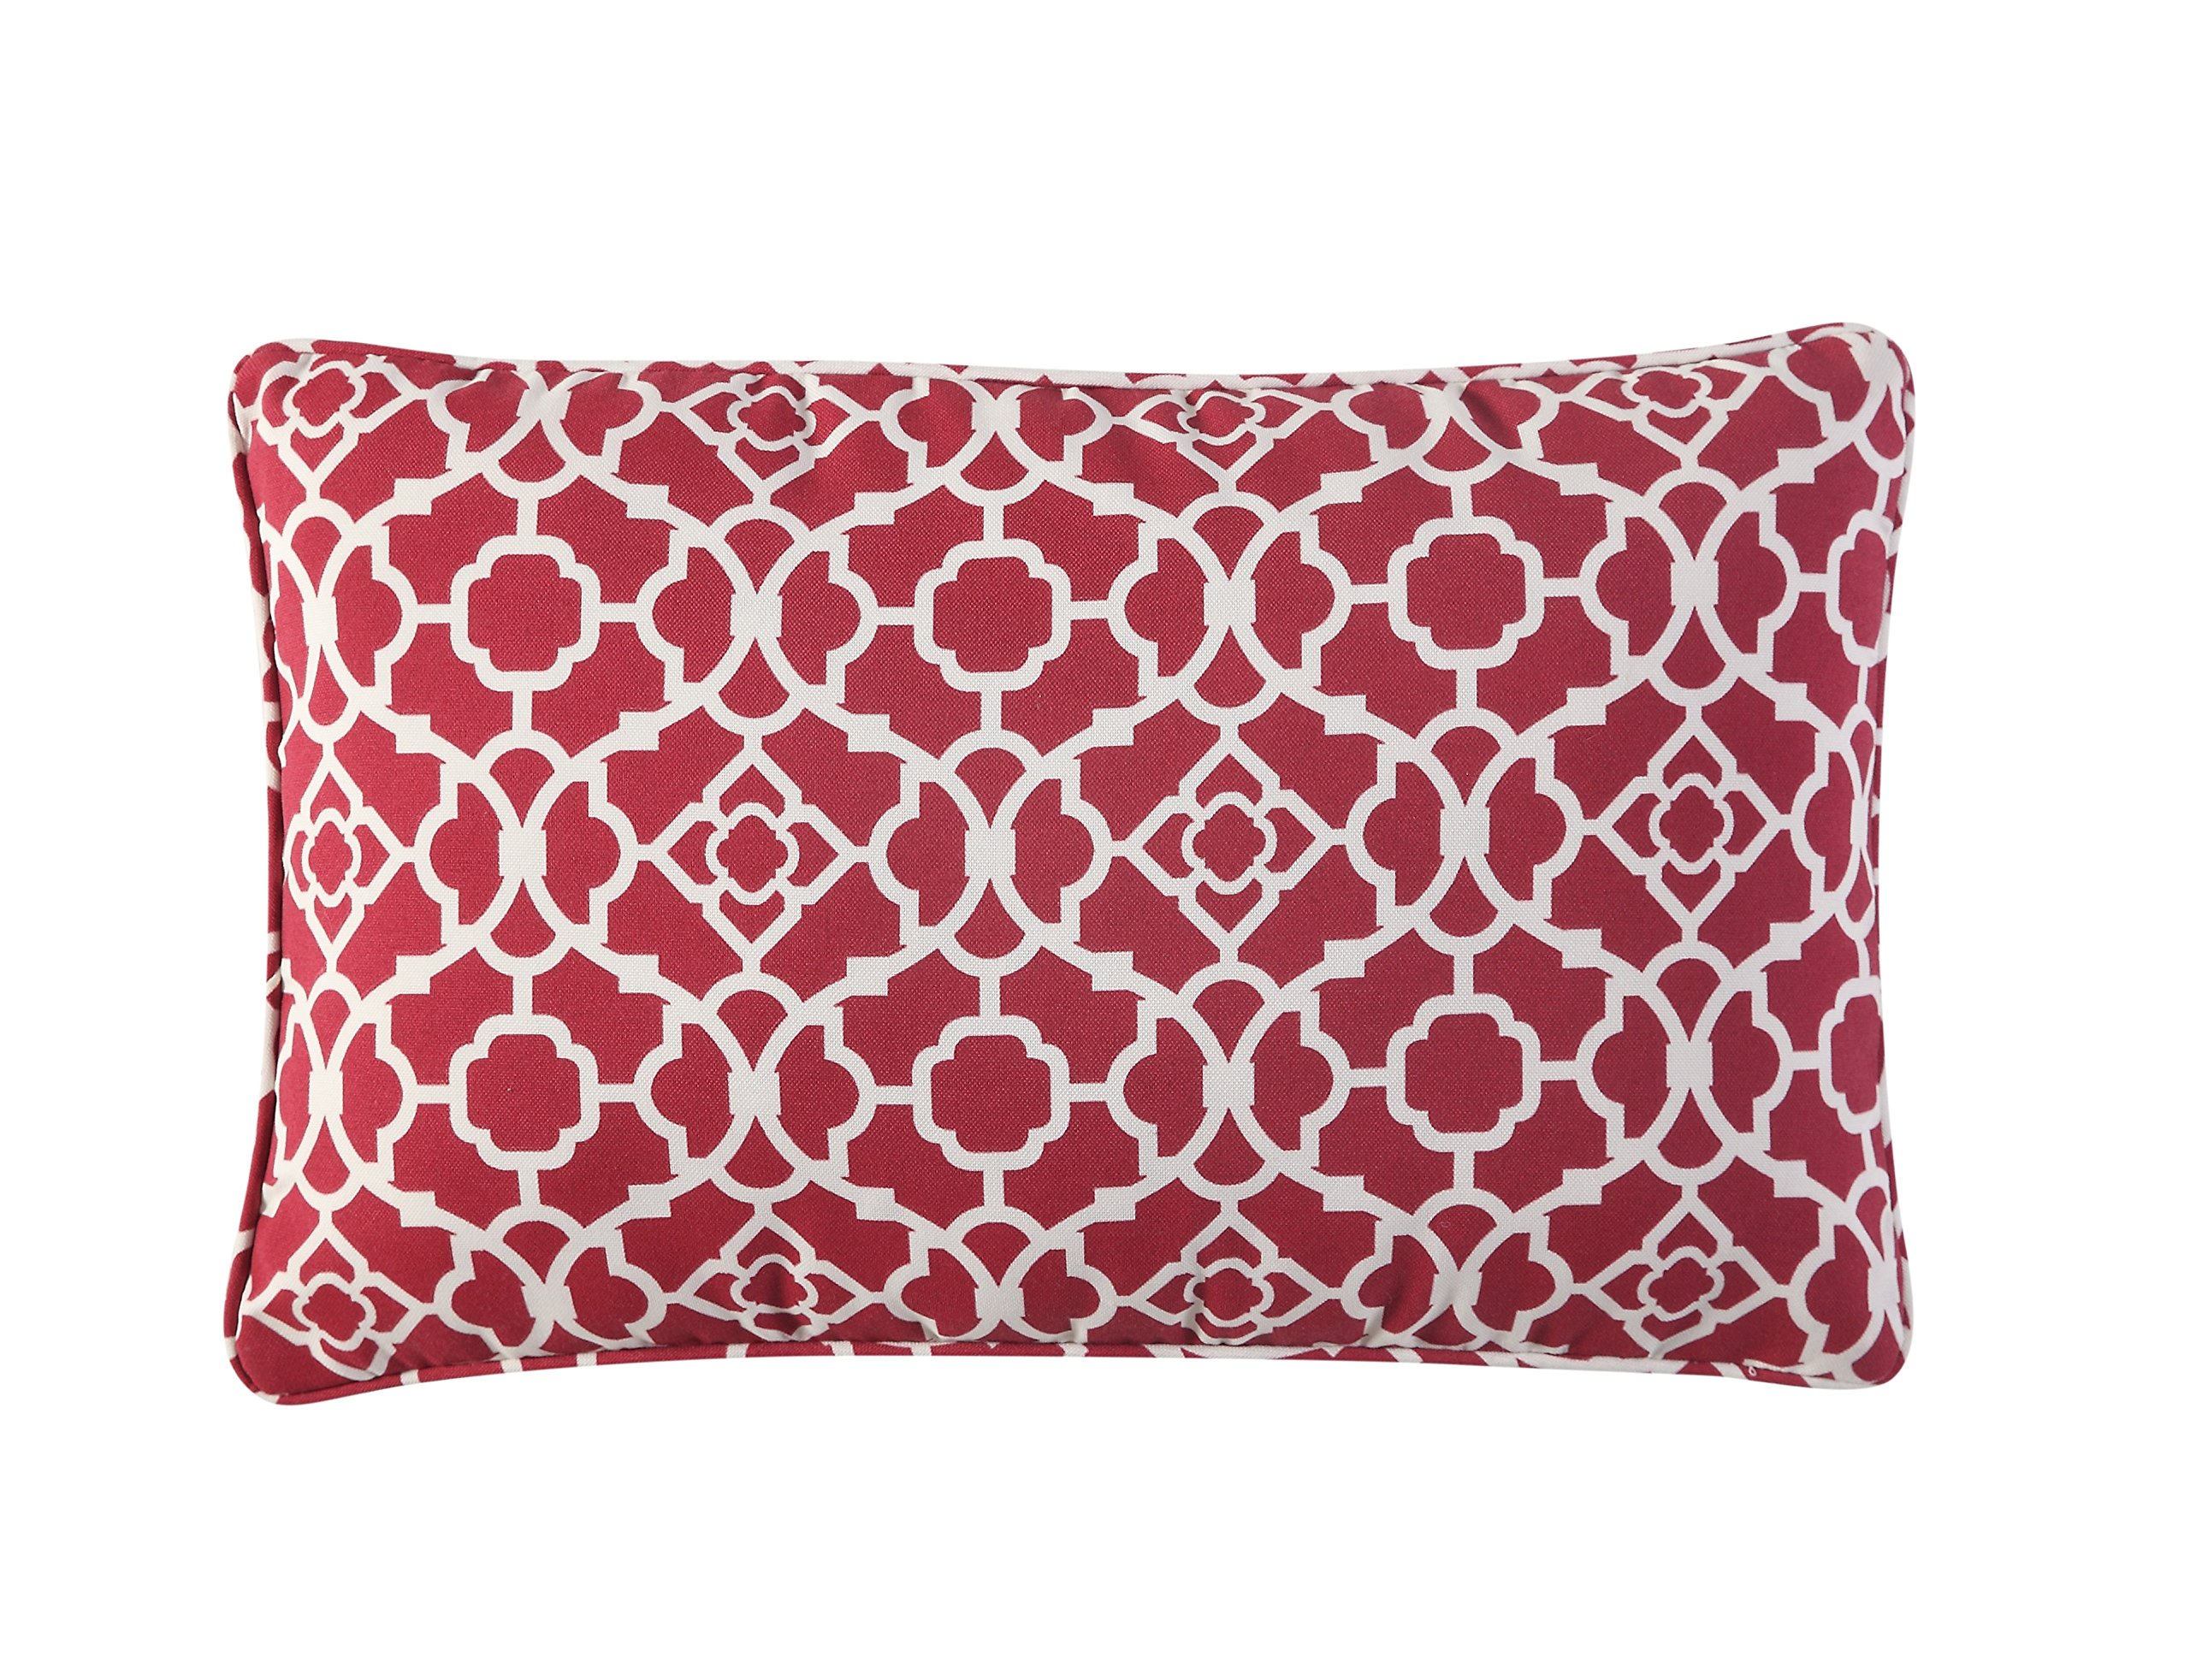 WAVERLY Indoor/Outdoor Decorative Throw Cushion – 19 x 12 Inches, FILLING INCLUDED, Available in Many Designs, Comfortable and Durable (Lov Latt RED) - UV RESISTANT: The Waverly collection of outdoor cushions is made of 100% polyester UV resistant fabric. WATER REPELLENT: Made to withstand the outdoors, the water repellant fabric will not soak up from spills. FILLING INCLUDED: Throw pillows are shipped with the filling included. Notice: Due to vacuum package, the pillow comes in compressed form, it will take 1-2 days to fully expand. - patio, outdoor-throw-pillows, outdoor-decor - 91xpFAXrE%2BL -